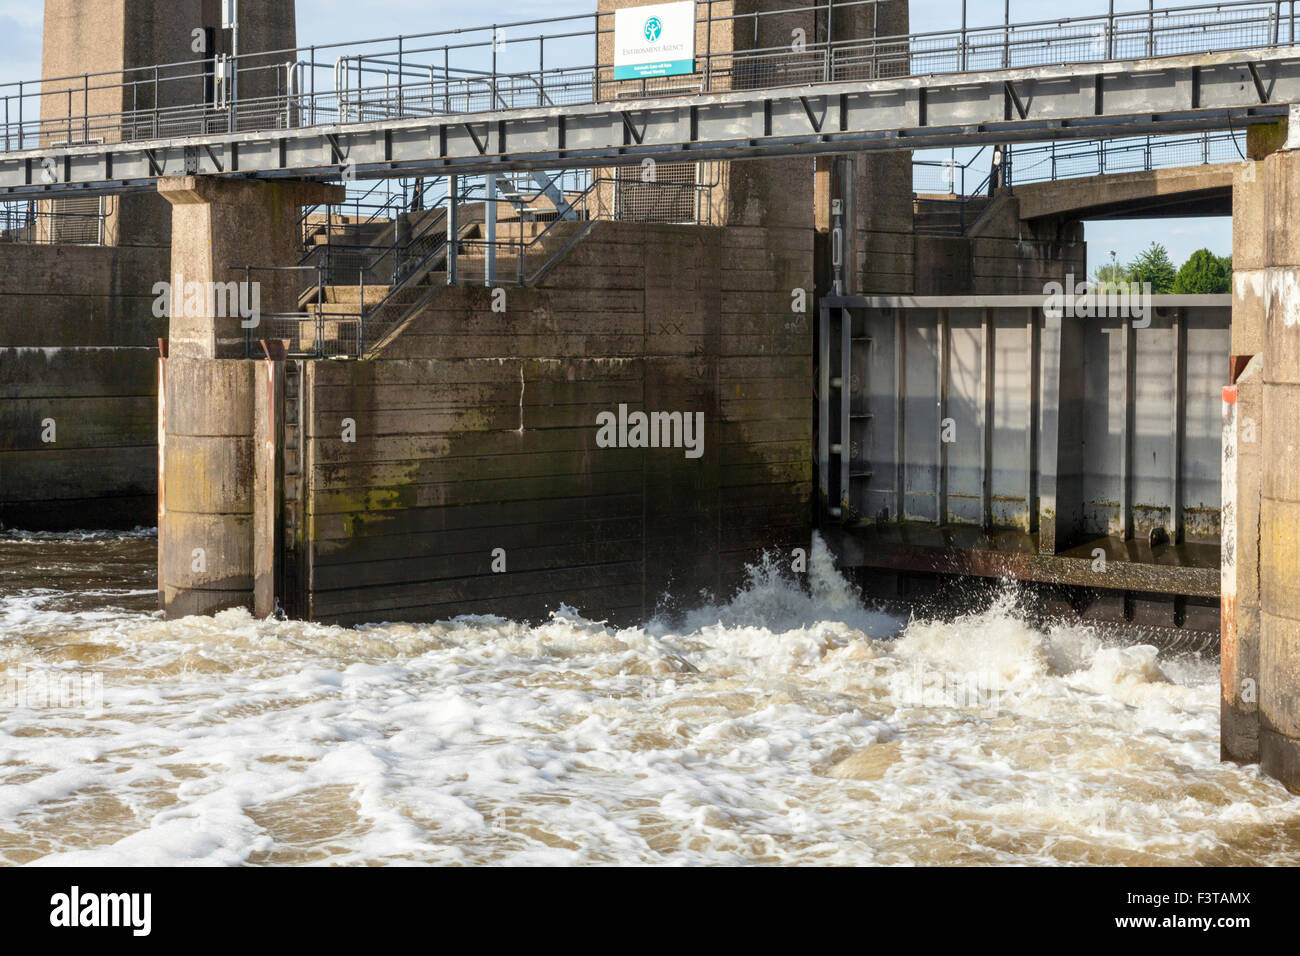 Sluice gates at Holme Sluices managed by the Environment Agency on the River Trent at Colwick, Nottingham, England, - Stock Image